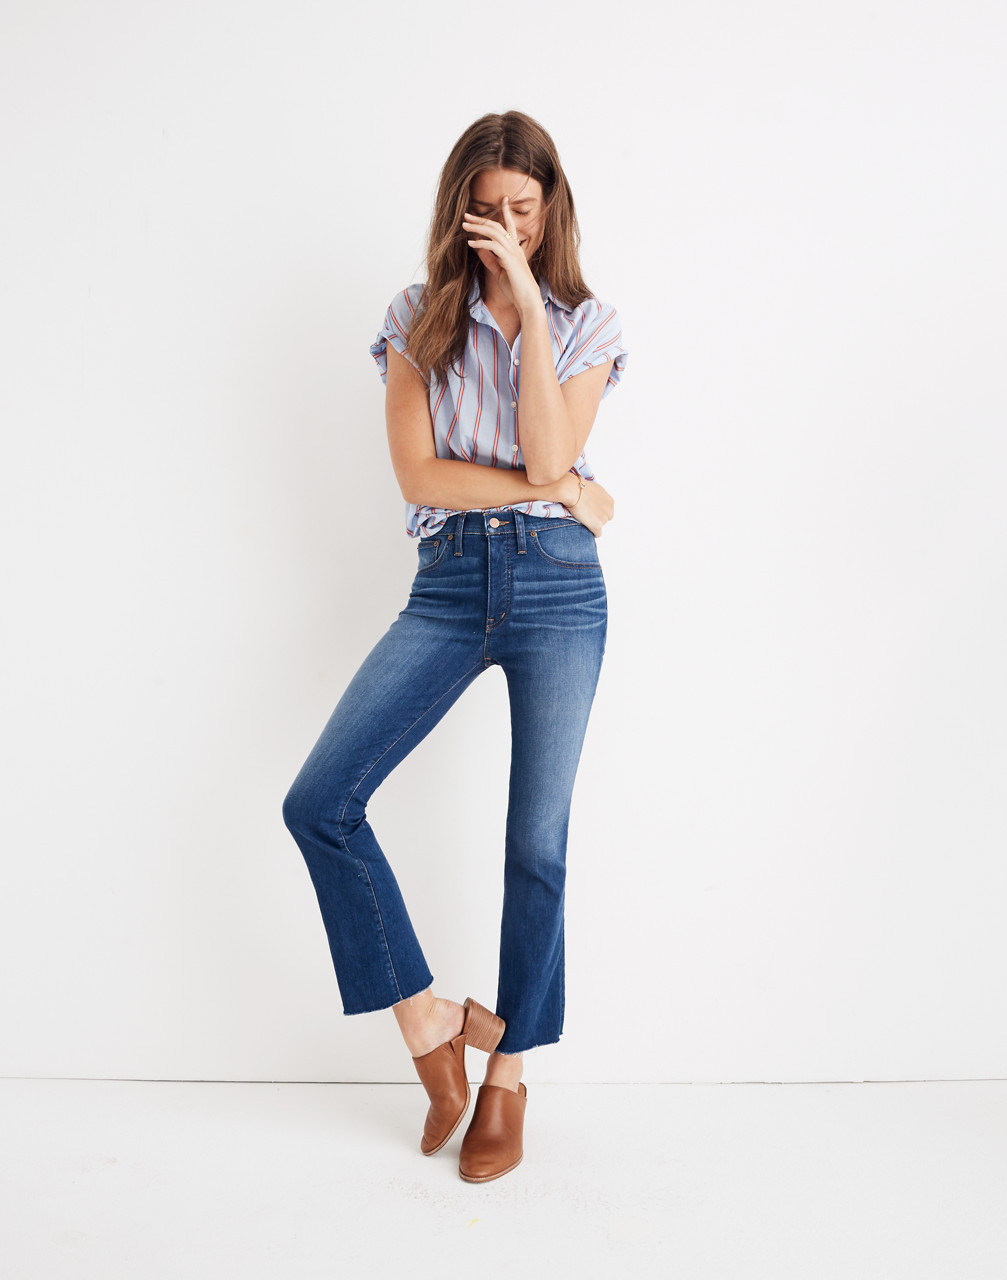 Cali Demi-Boot Jeans in Marco Wash in marco wash image 1